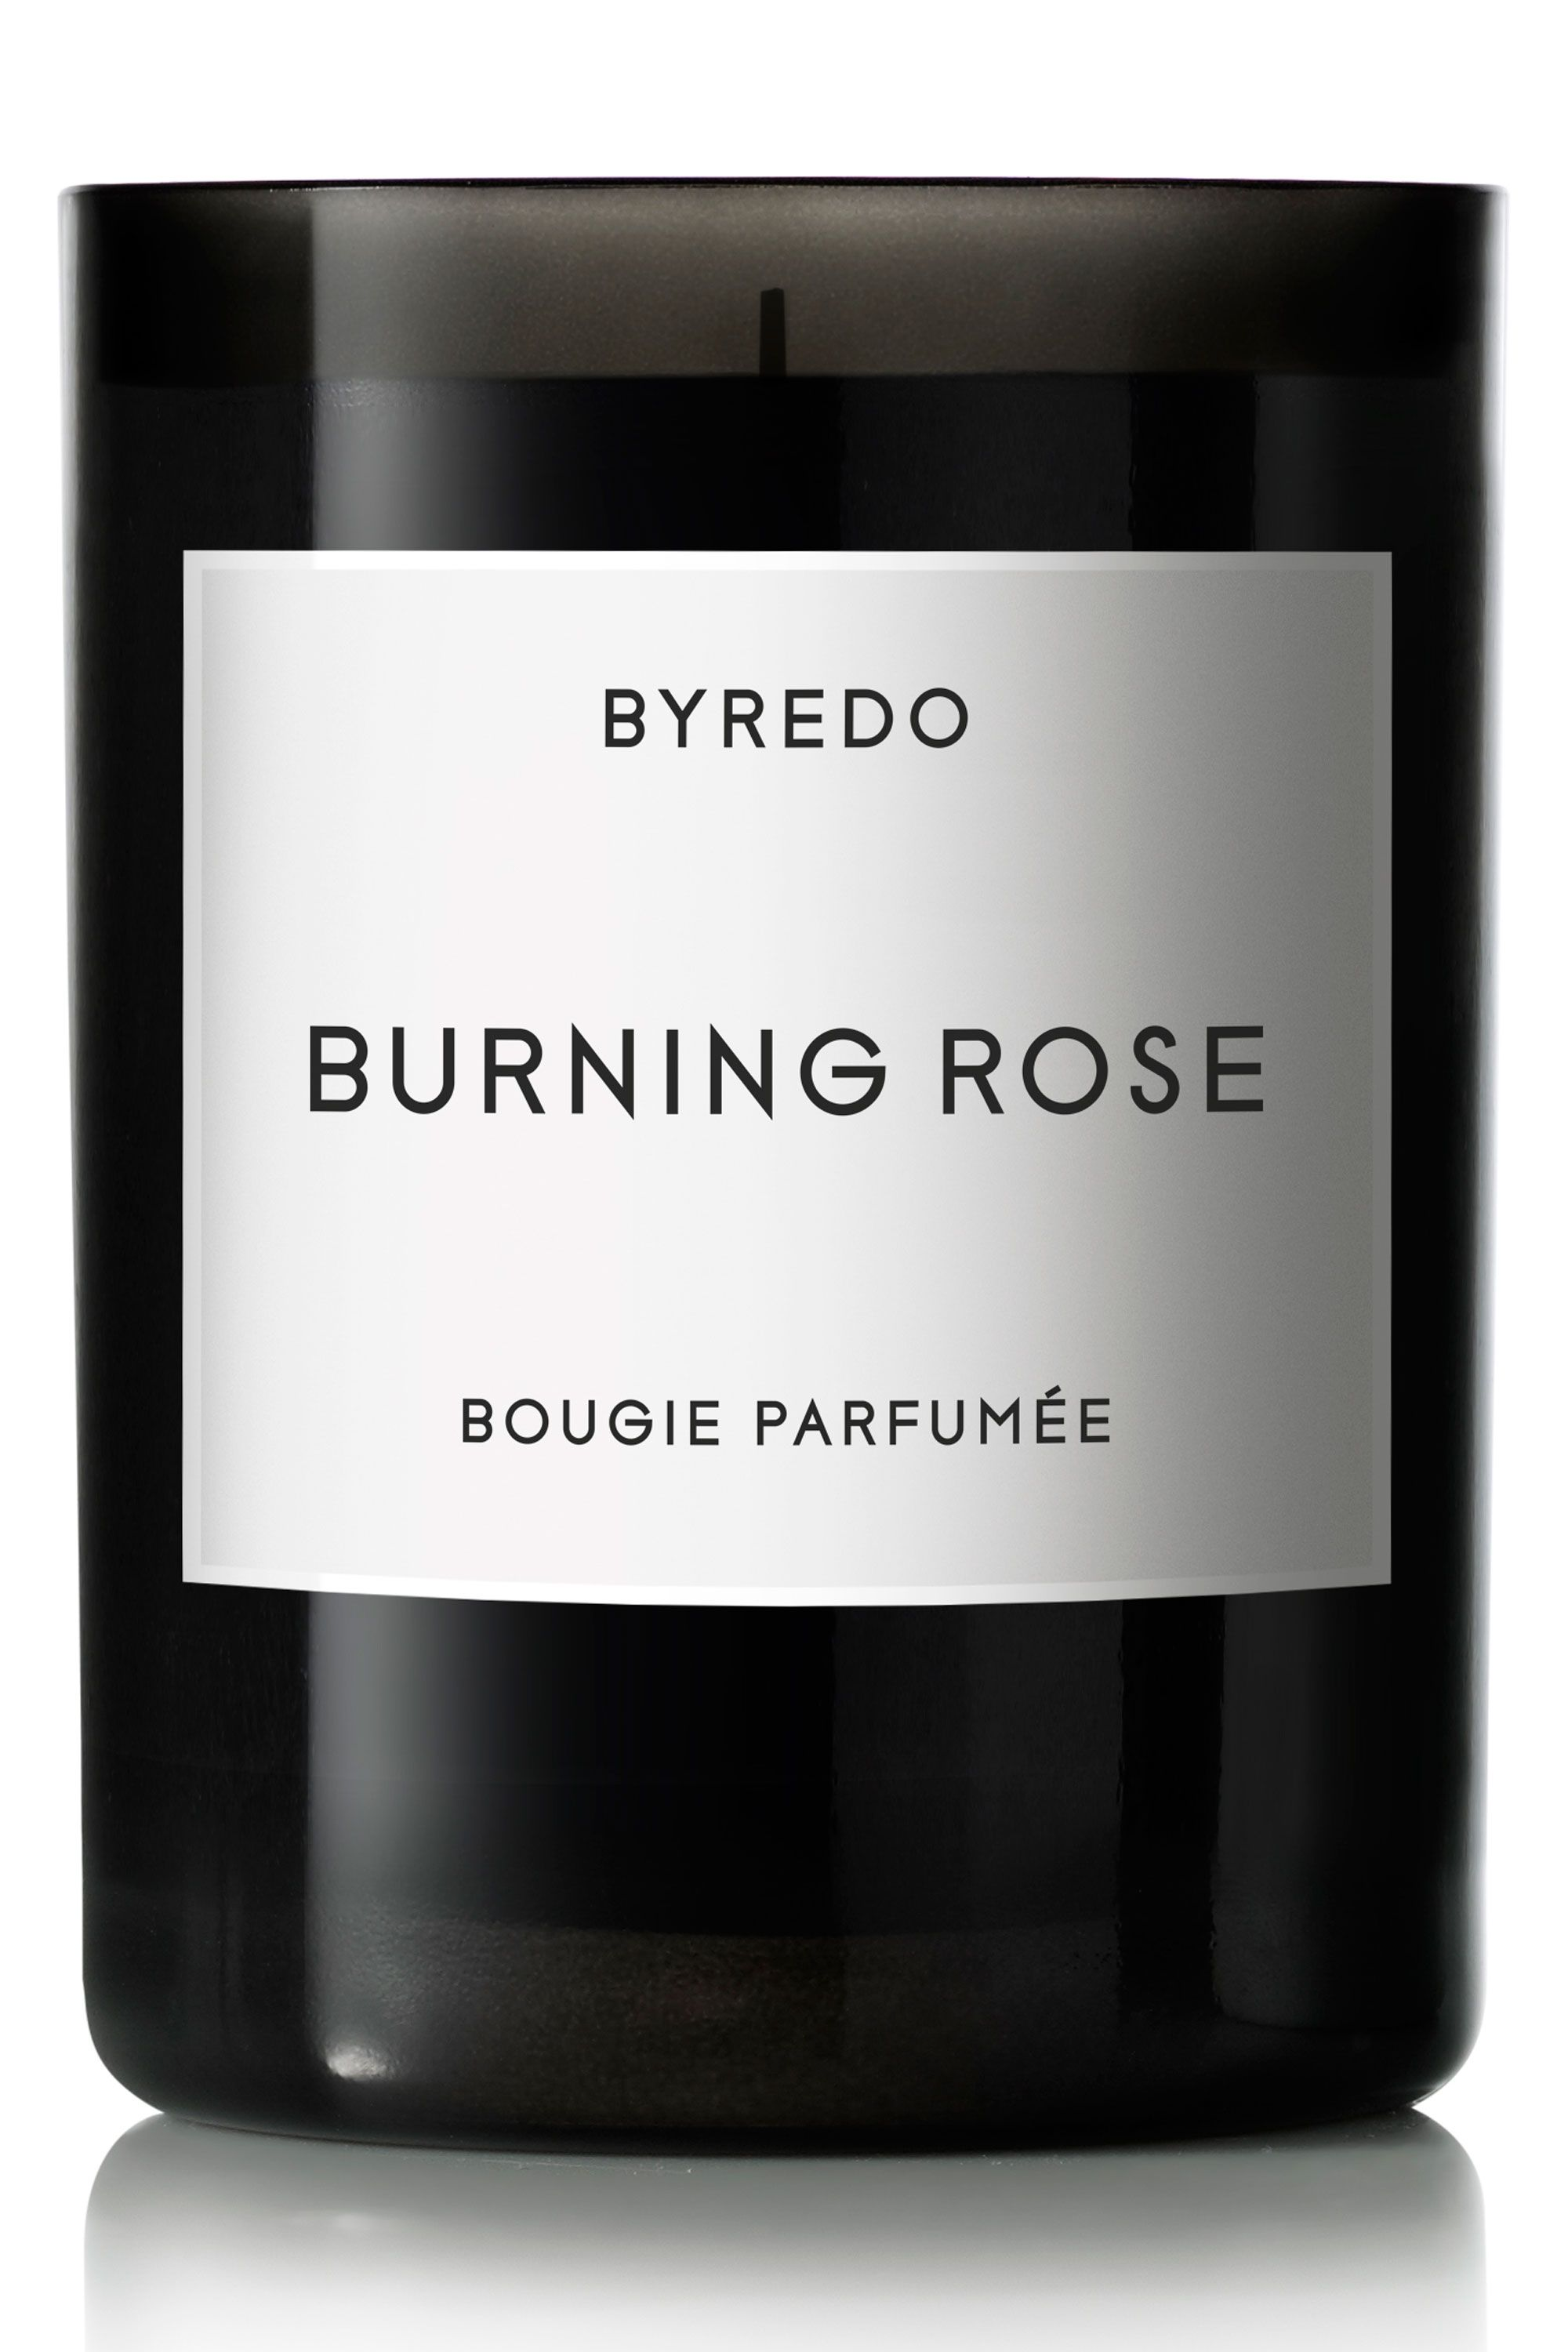 """The candle you want to light if you're trying to set the mood.  <em>Byredo Burning Rose Candle, $80, <a target=""""_blank"""" href=""""http://www.barneys.com/Byredo-Burning-Rose-Candle-503931683.html?gclid=CPnb9Mvl8cUCFQQRHwodRqEApw"""">barneys.com</a>.</em>"""